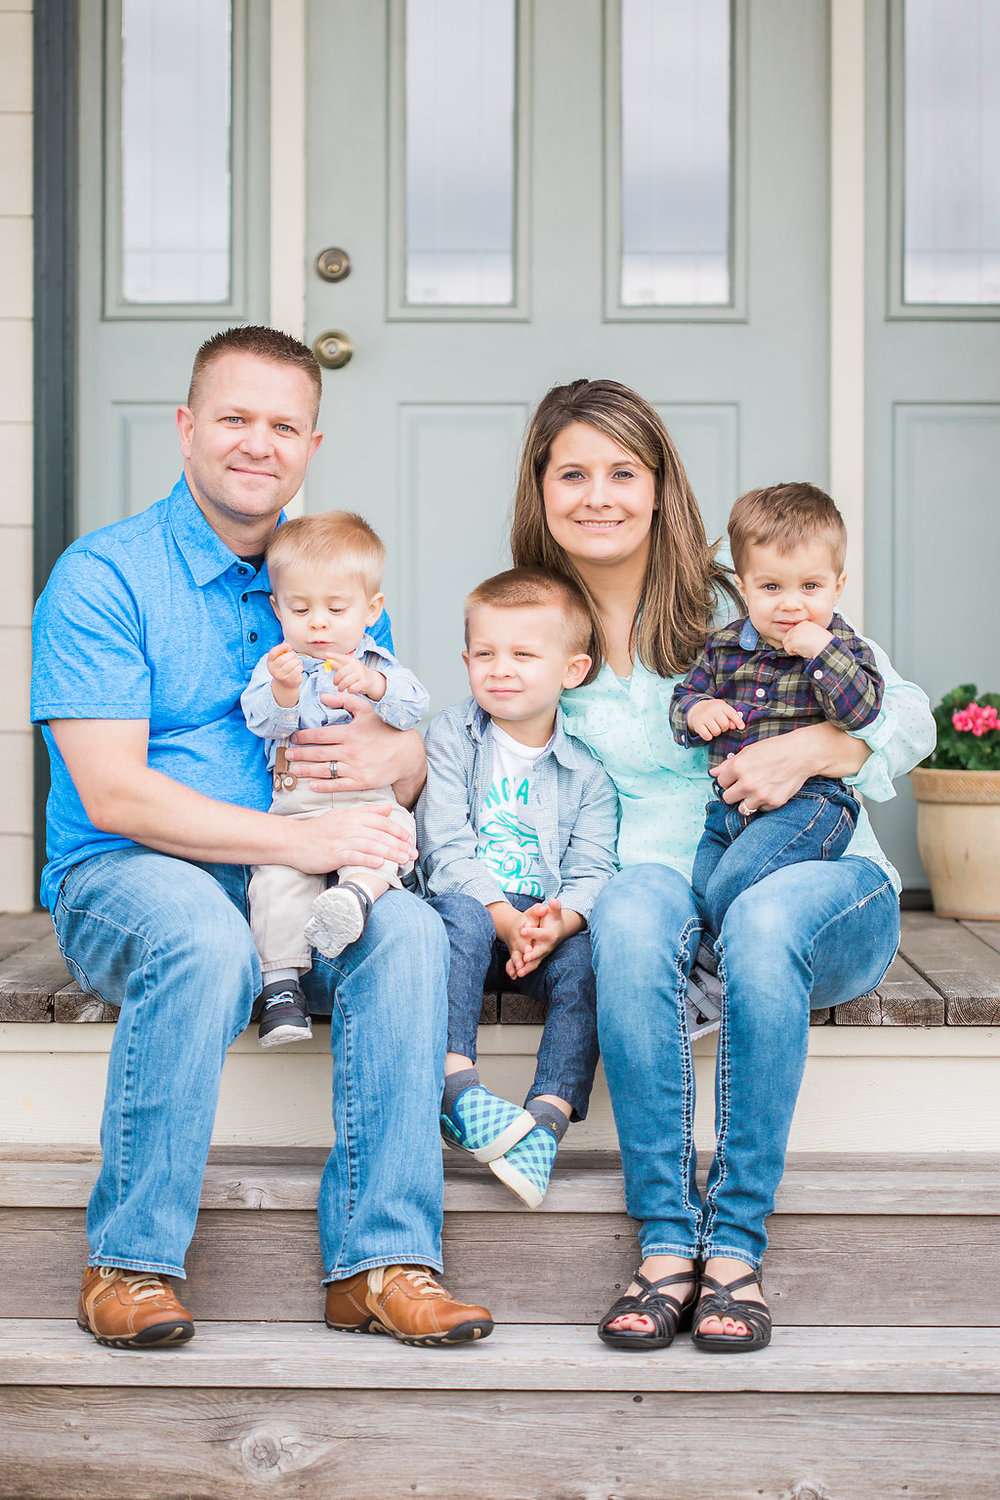 Family Photo Session | What to Wear for Family Pictures | Twin Photo Session | Family Photography | Mastin Labs | Lifestyle Photography | Twin Boys Photo Session | Beautiful Family on Front Porch | Front Porch Photo Shoot